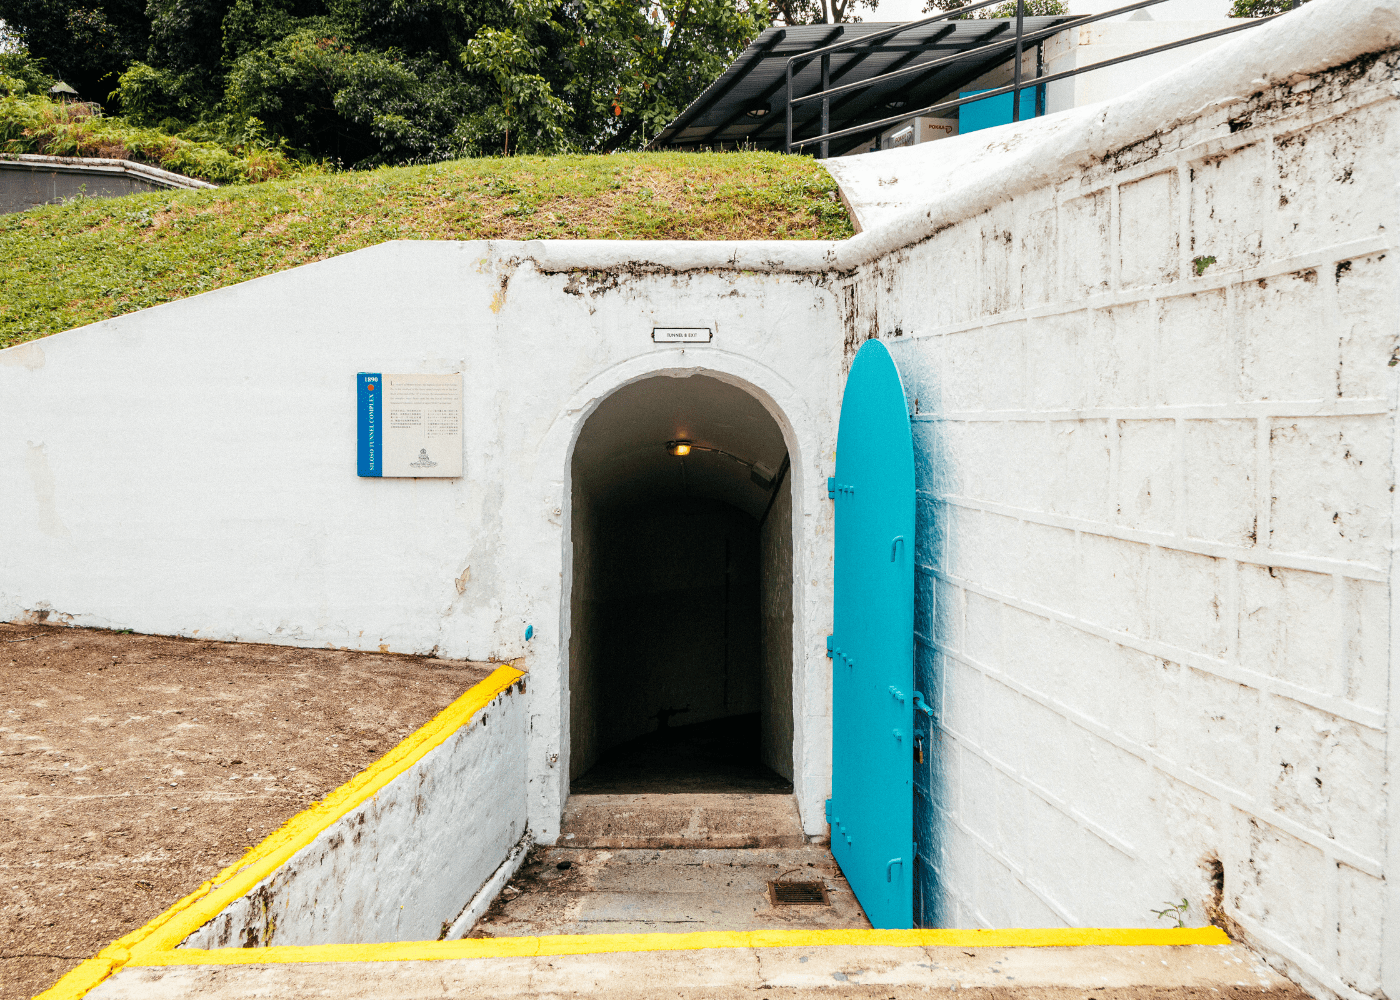 Our guide to Fort Siloso: Underground tunnels